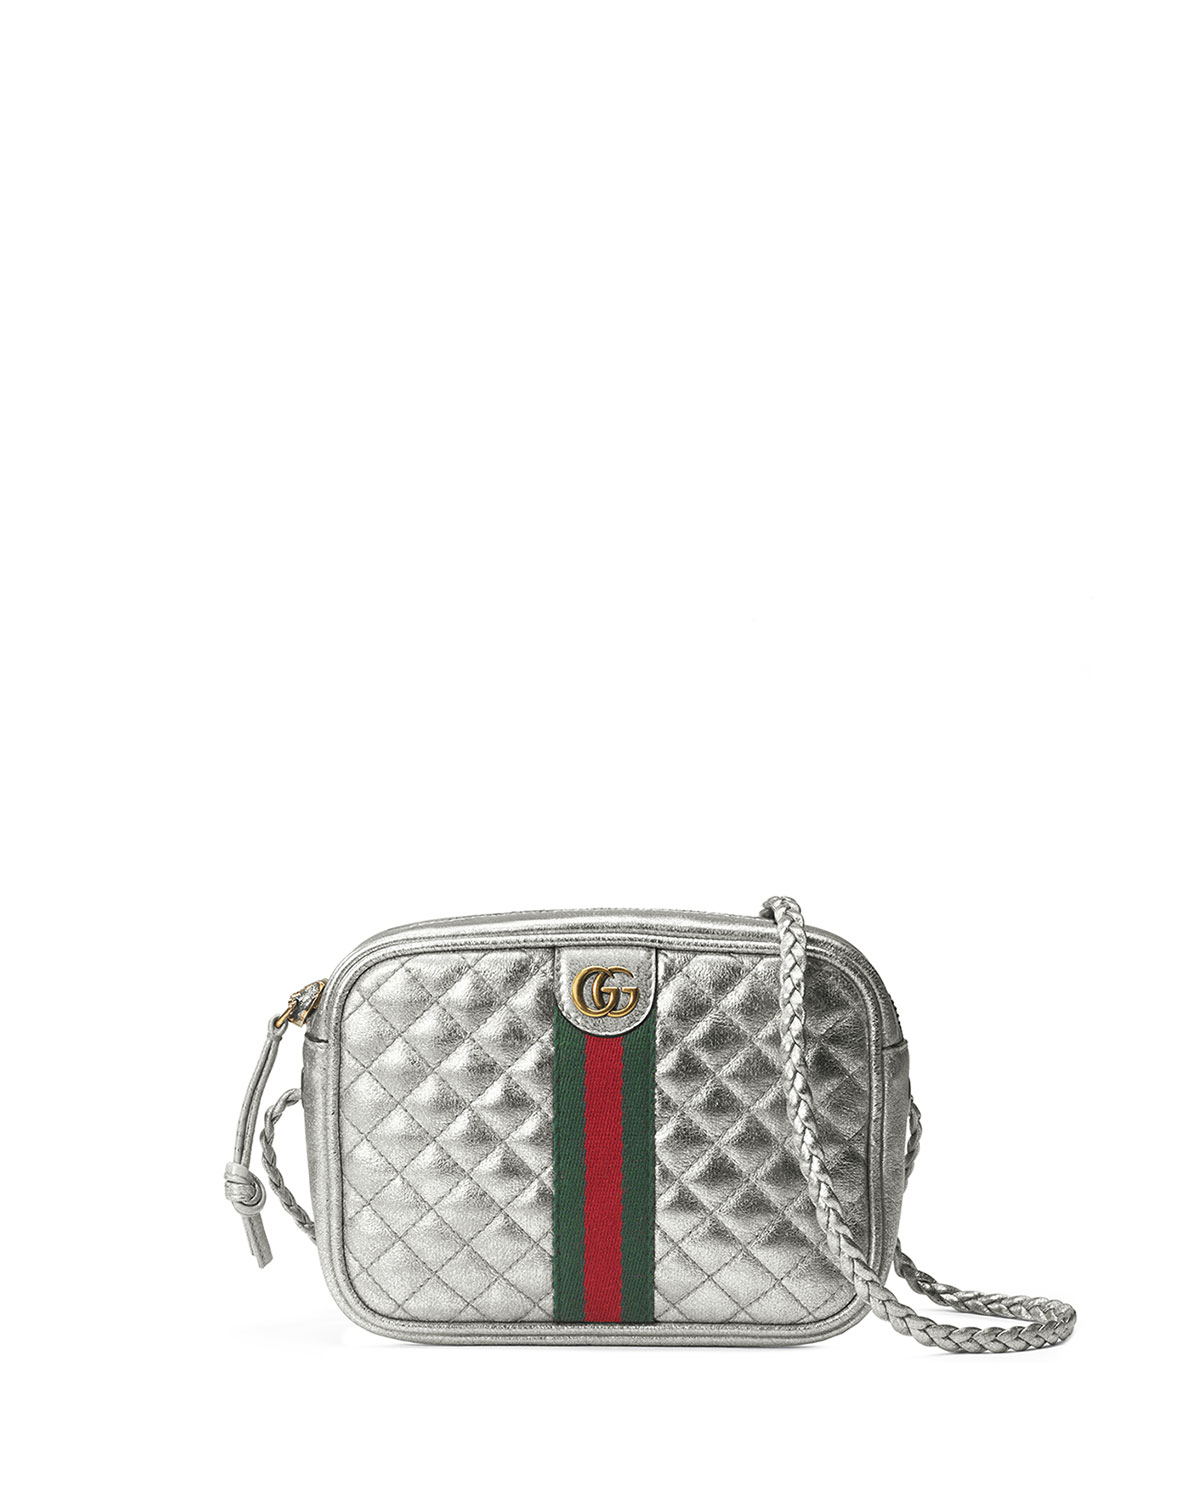 d86ac6855 Gucci Trapuntata Metallic Leather Mini Crossbody Bag | Neiman Marcus